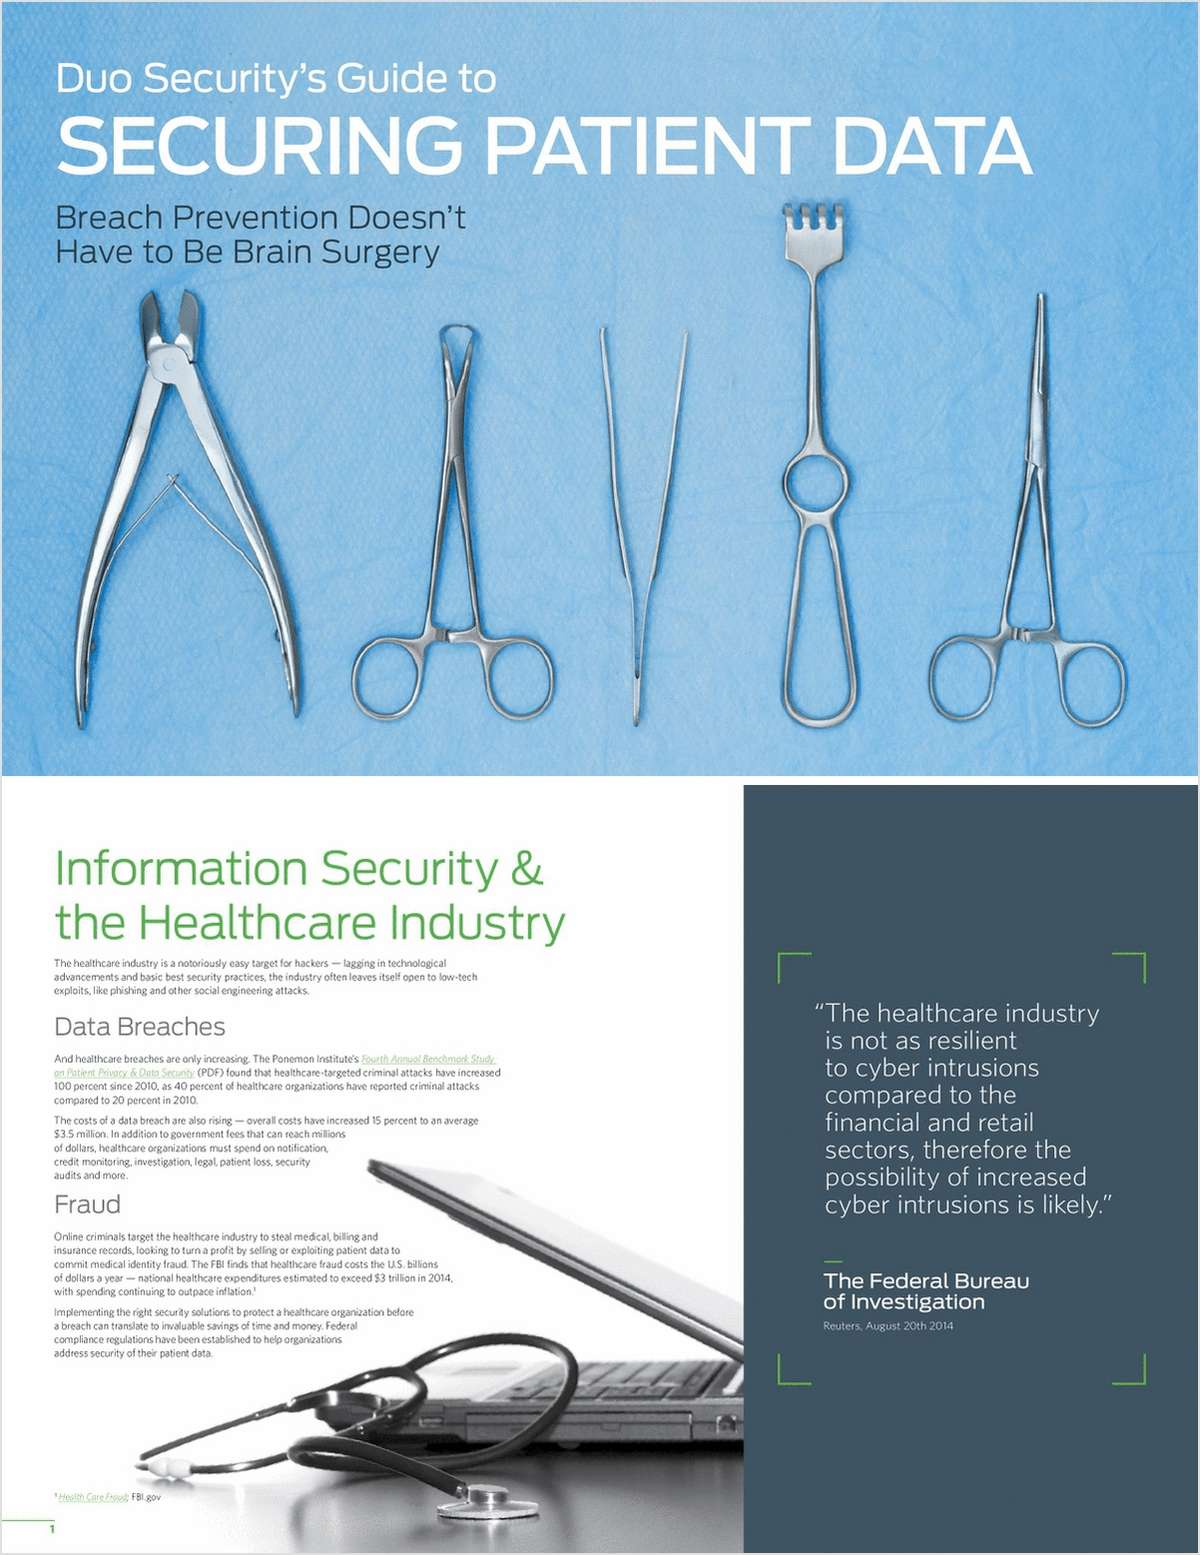 Duo Security's Guide to Securing Patient Data: Breach Prevention Doesn't Have to Be Brain Surgery